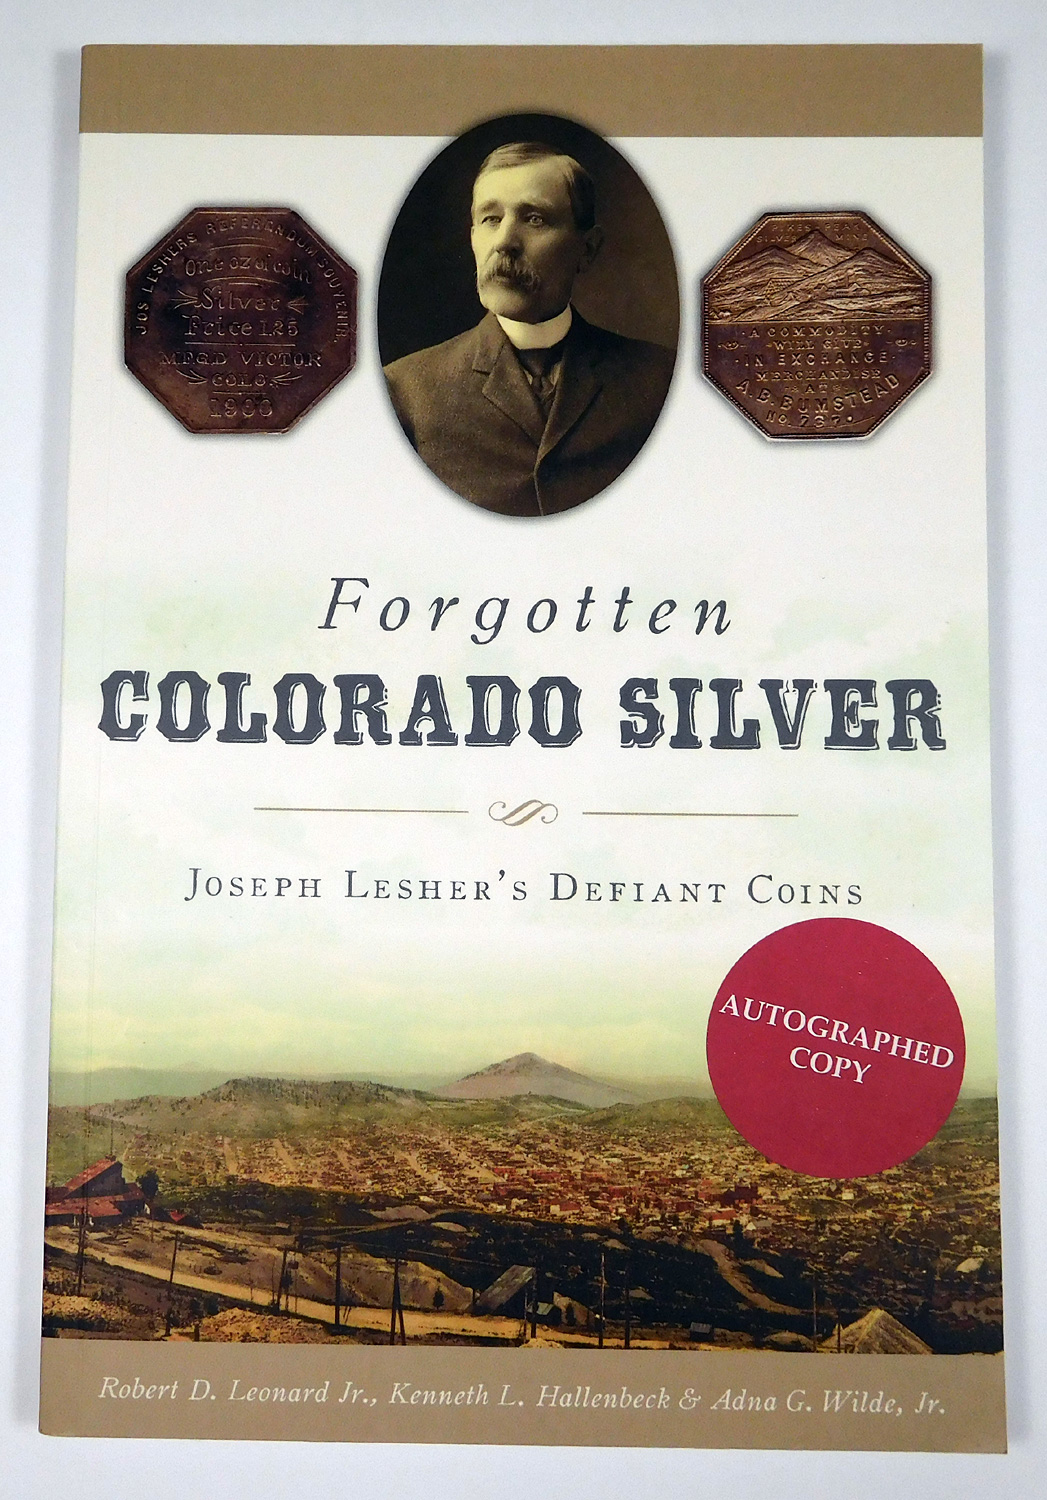 coloradosilver